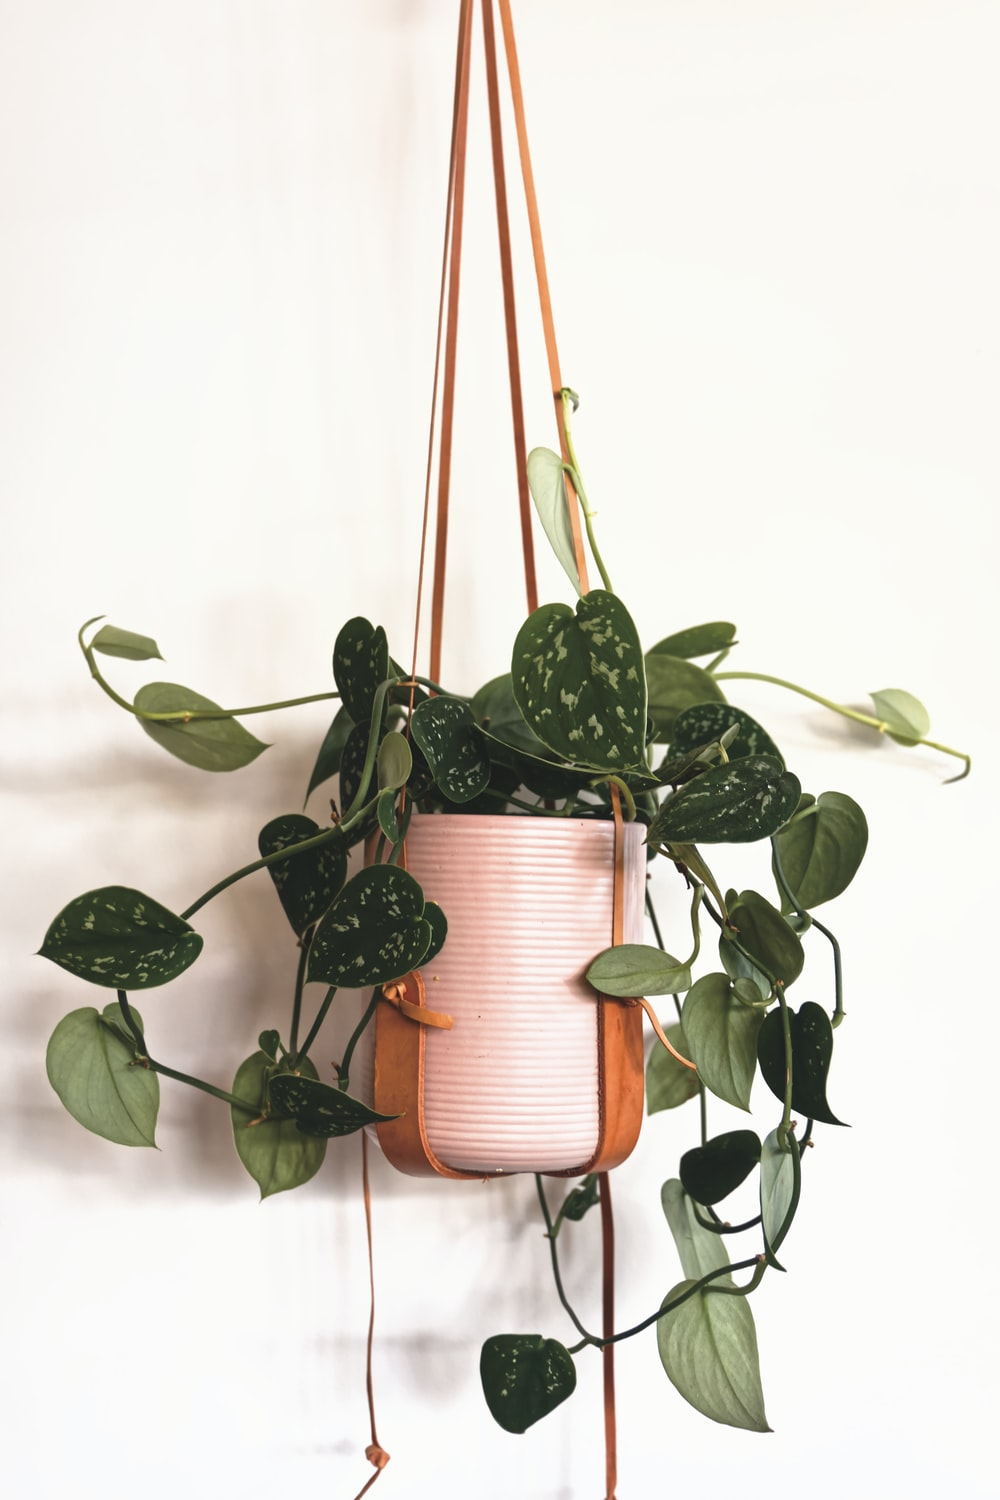 green plant in brown pot